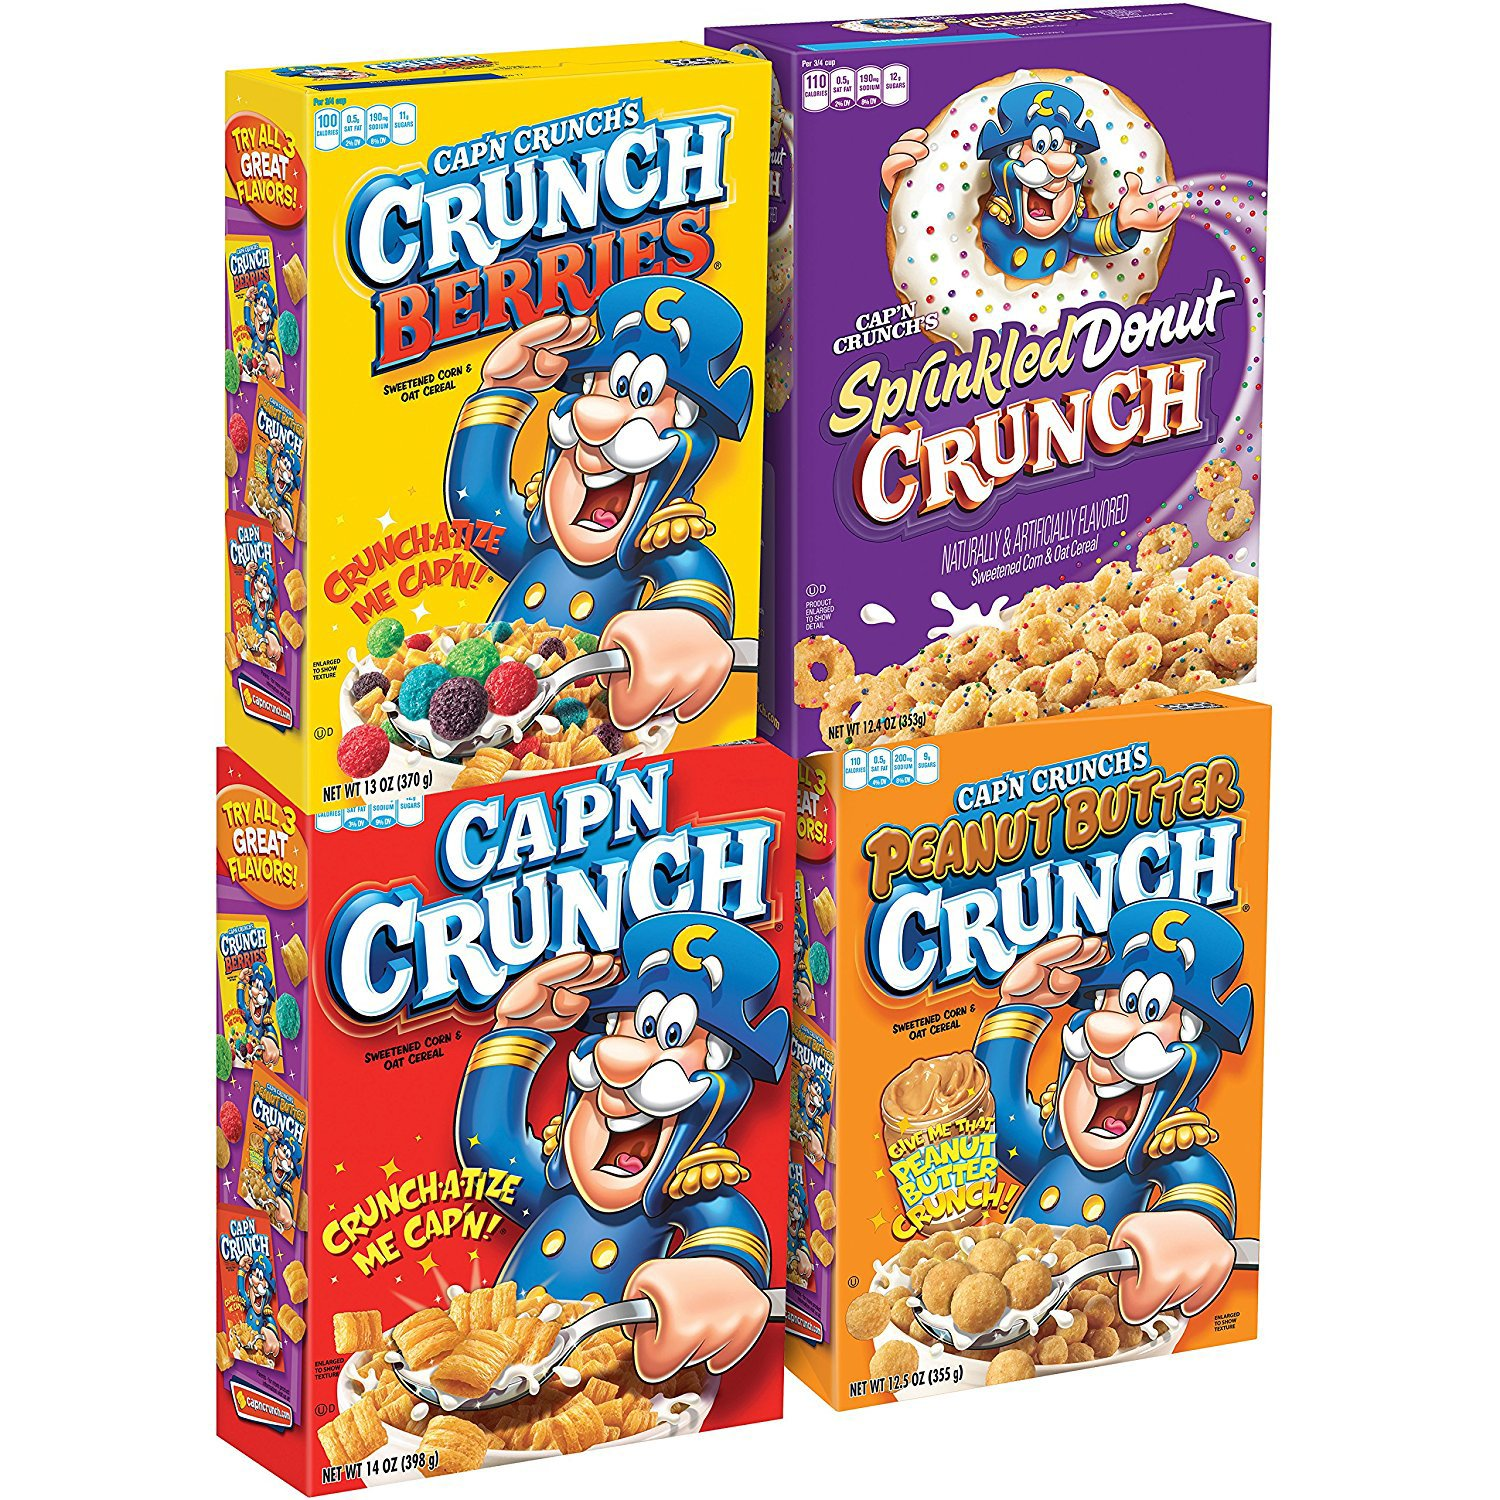 Amazon.com: Cap'n Crunch's Christmas Crunch Cereal